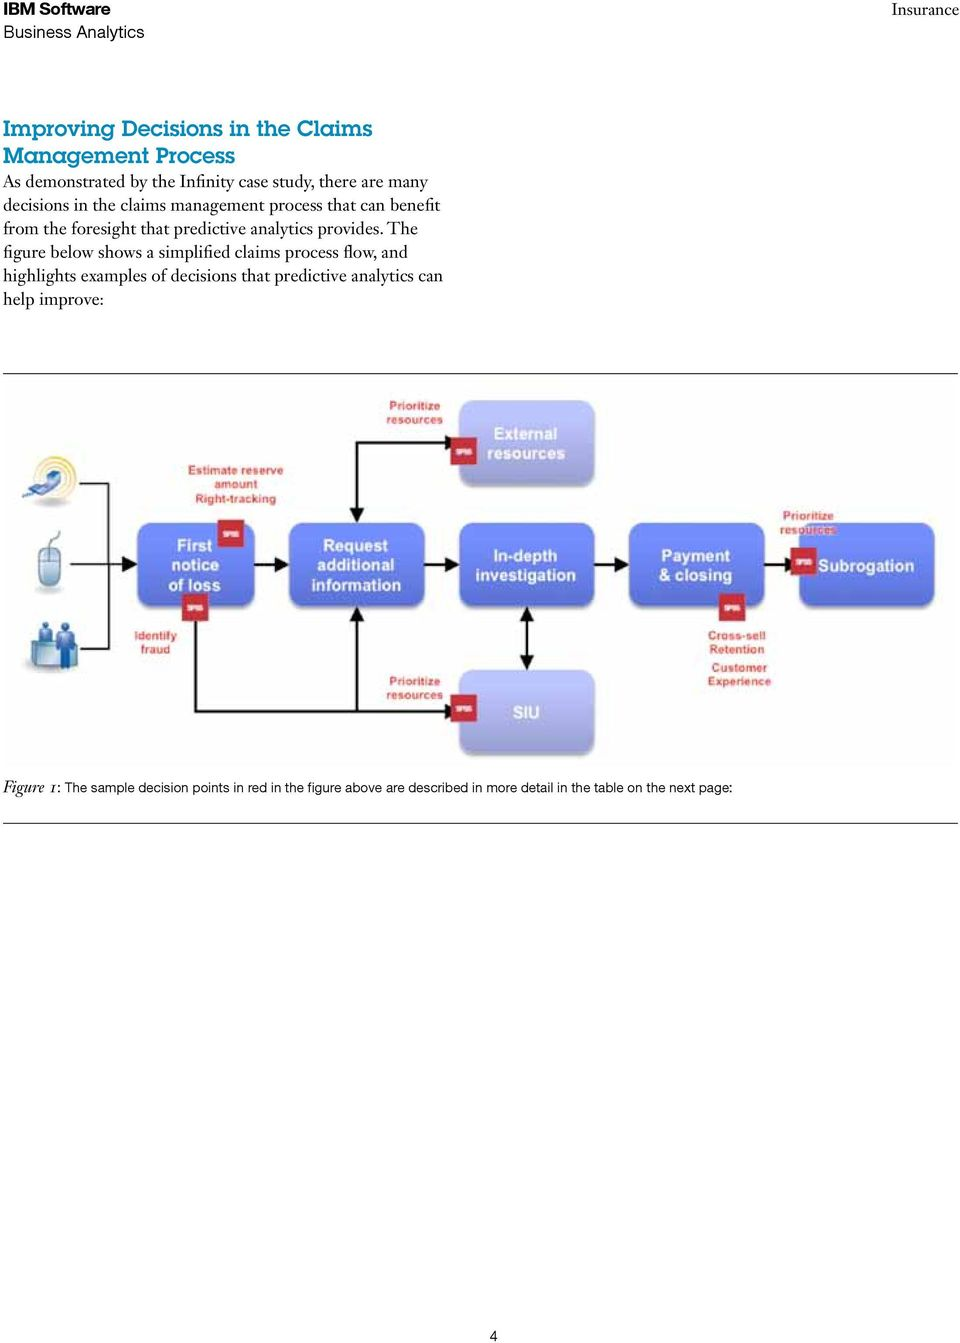 The figure below shows a simplified claims process flow, and highlights examples of decisions that predictive analytics